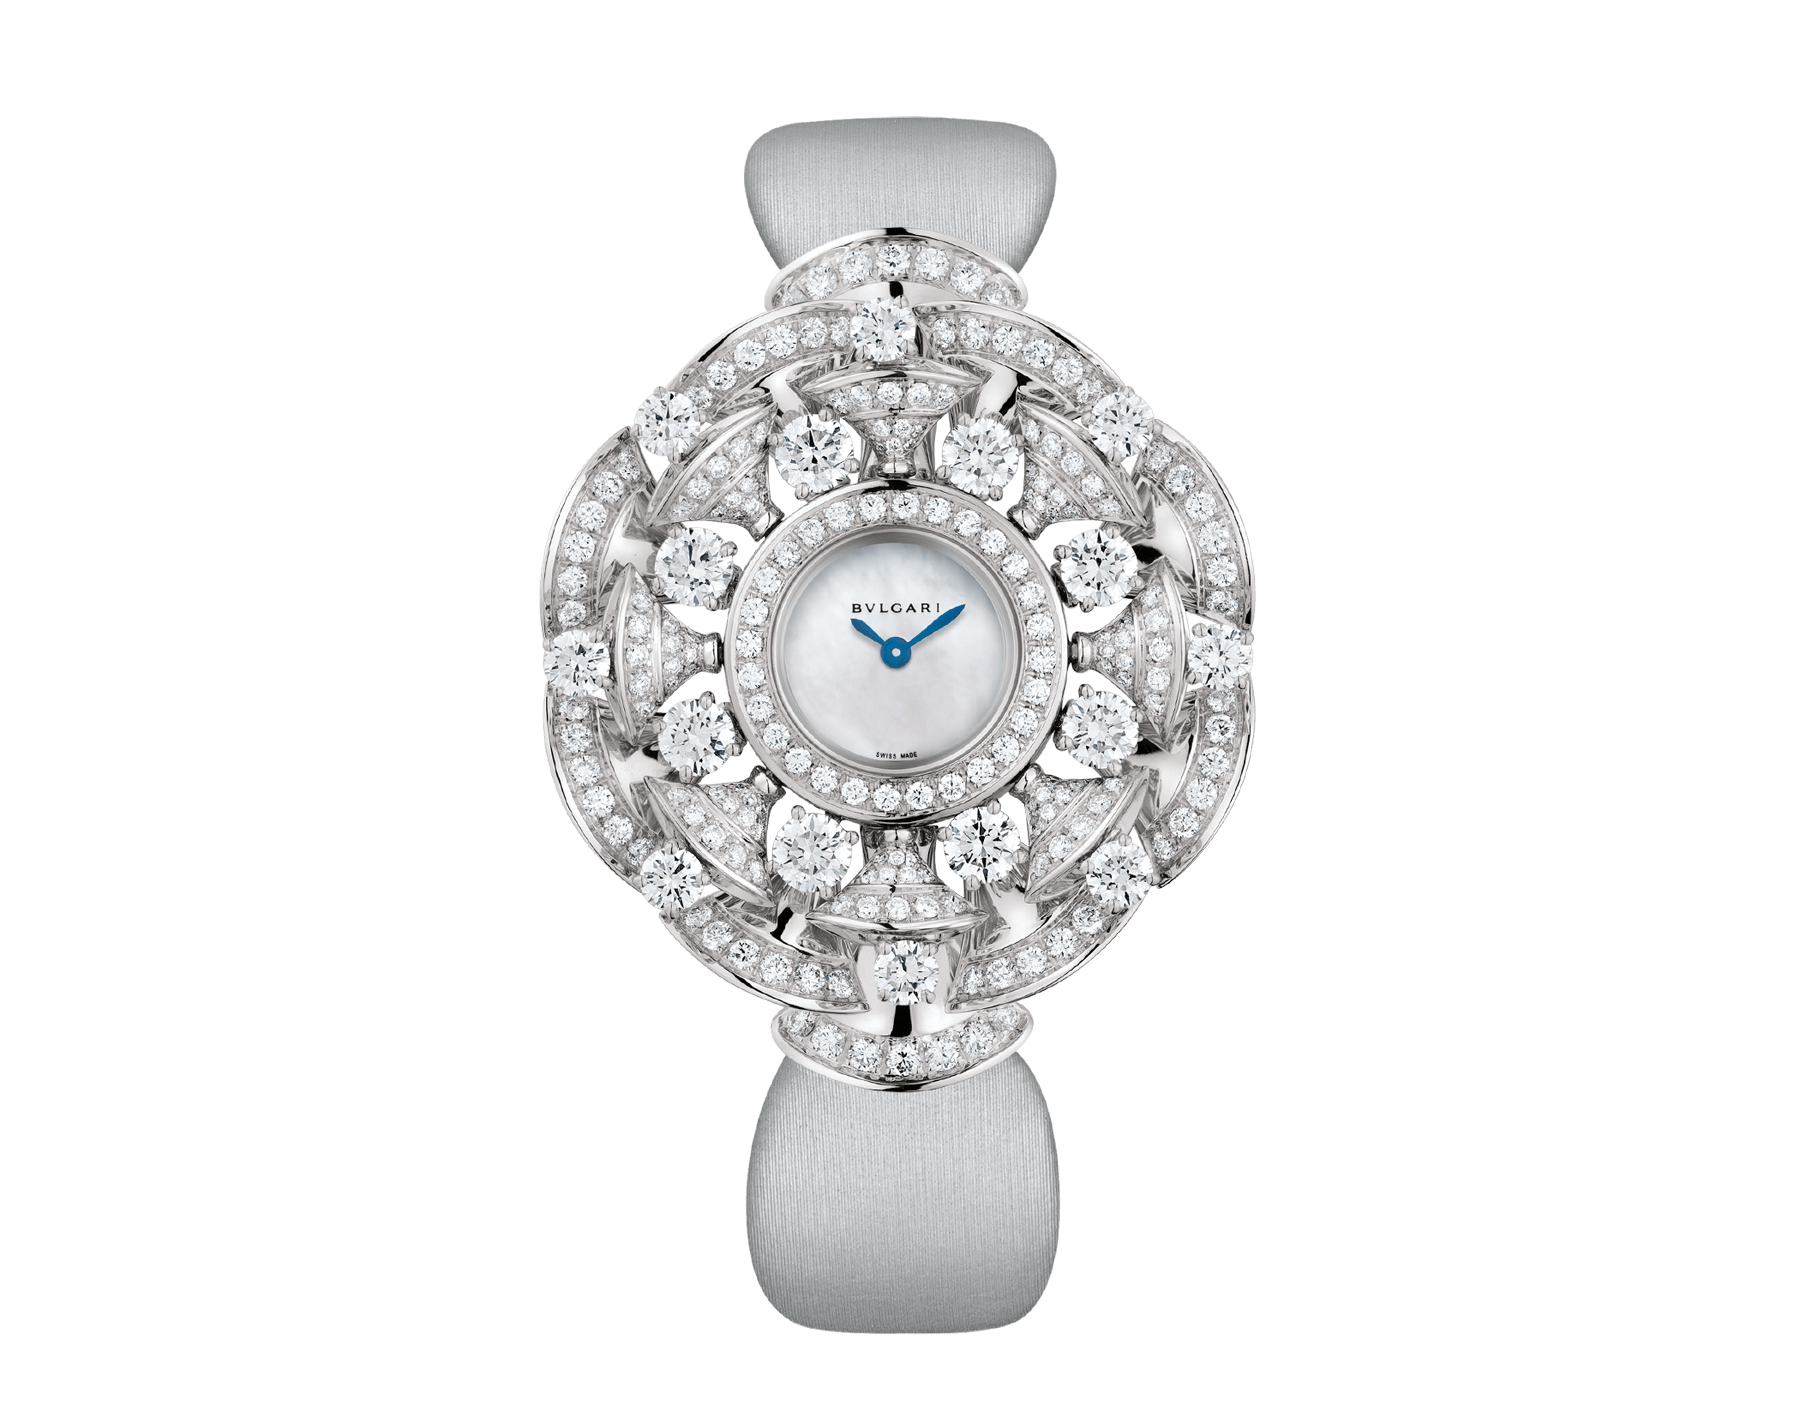 DIVAS' DREAM watch with 18 kt white gold case set with brilliant and round-cut diamonds, white mother-of-pearl dial and grey satin bracelet 102254 image 1